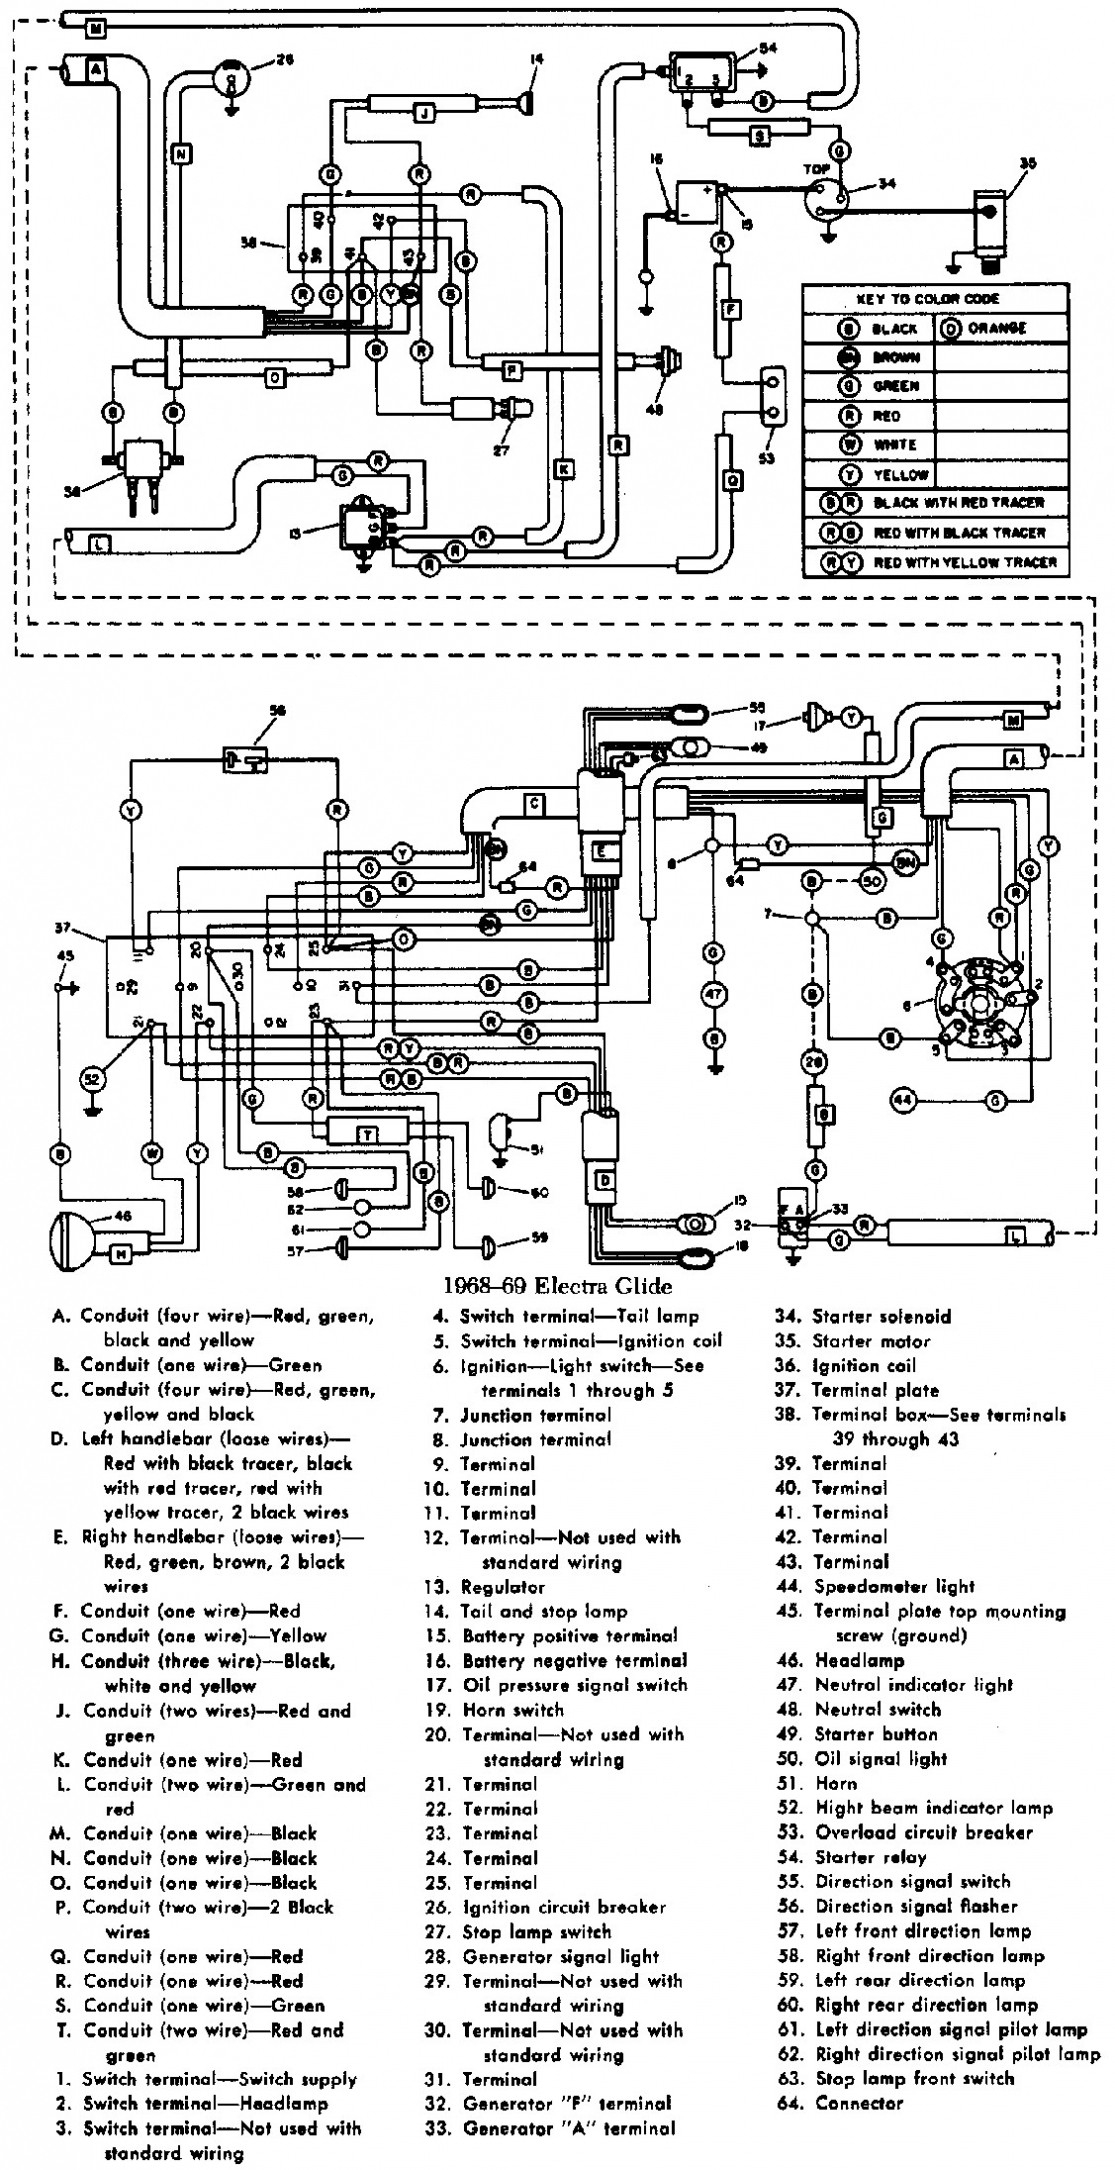 Ignition Switch Wiring Diagram Chevy Inspirational Ignition Switch - 5 Prong Ignition Switch Wiring Diagram